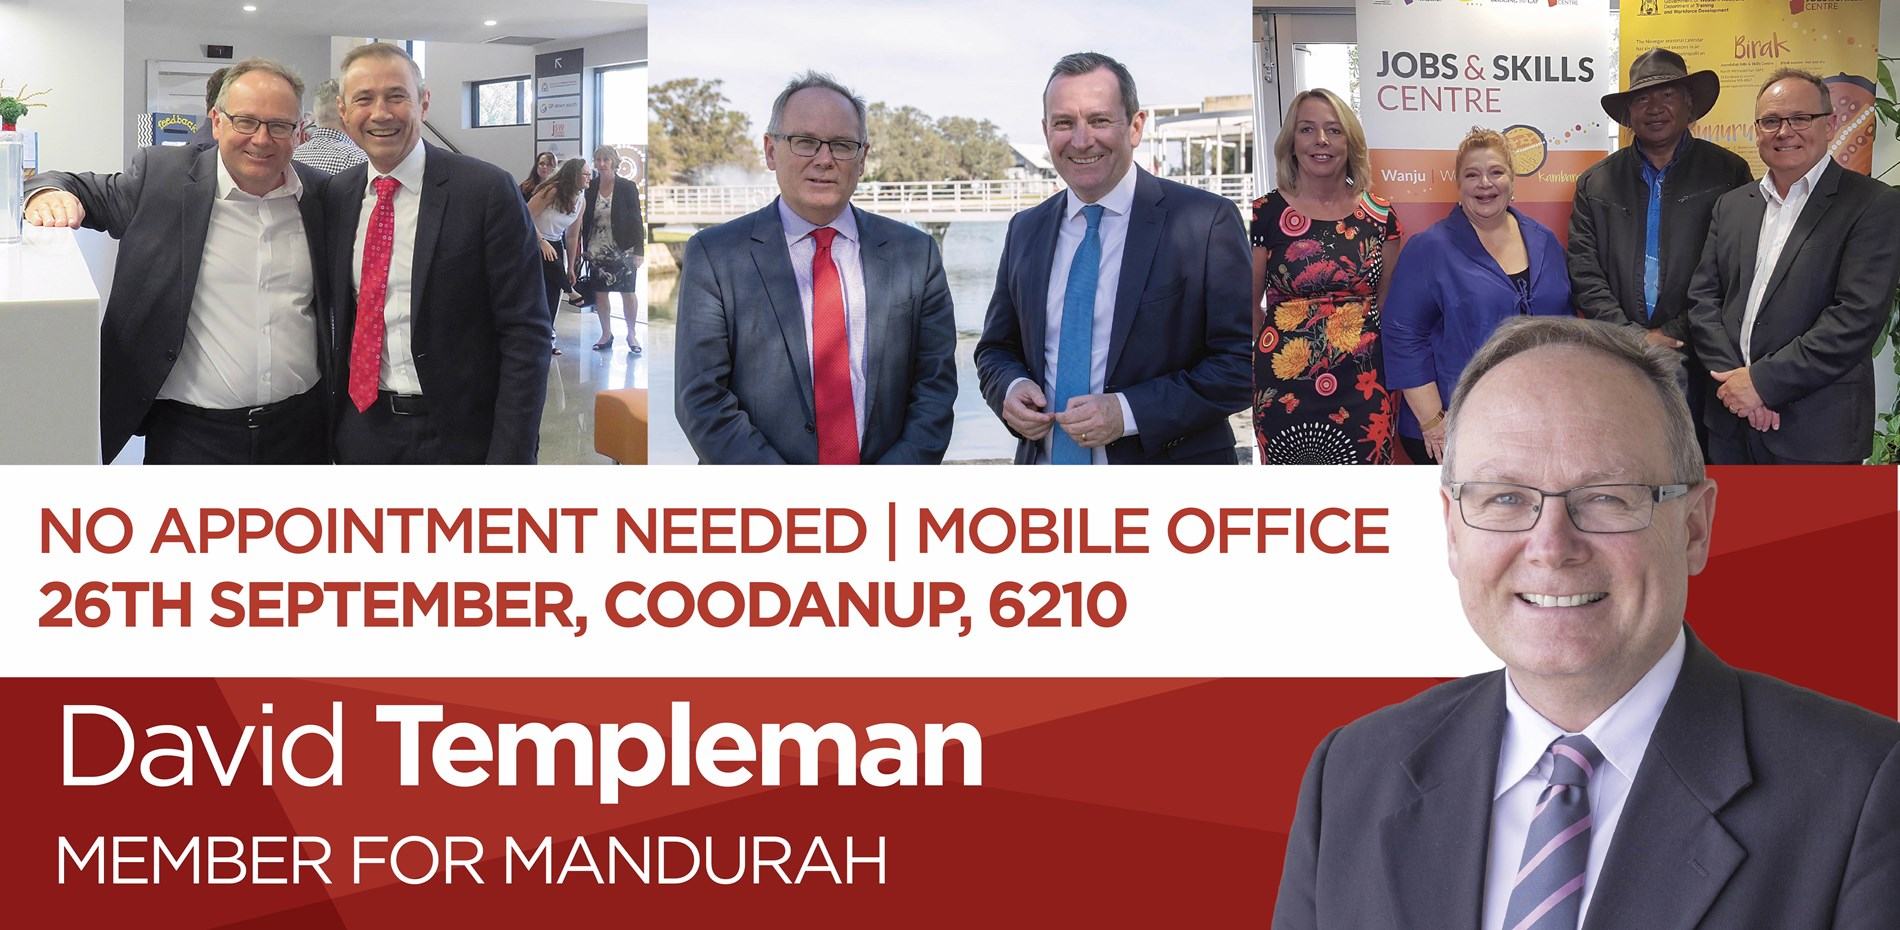 Coodanup Mobile Office - No Appointment Needed! Main Image